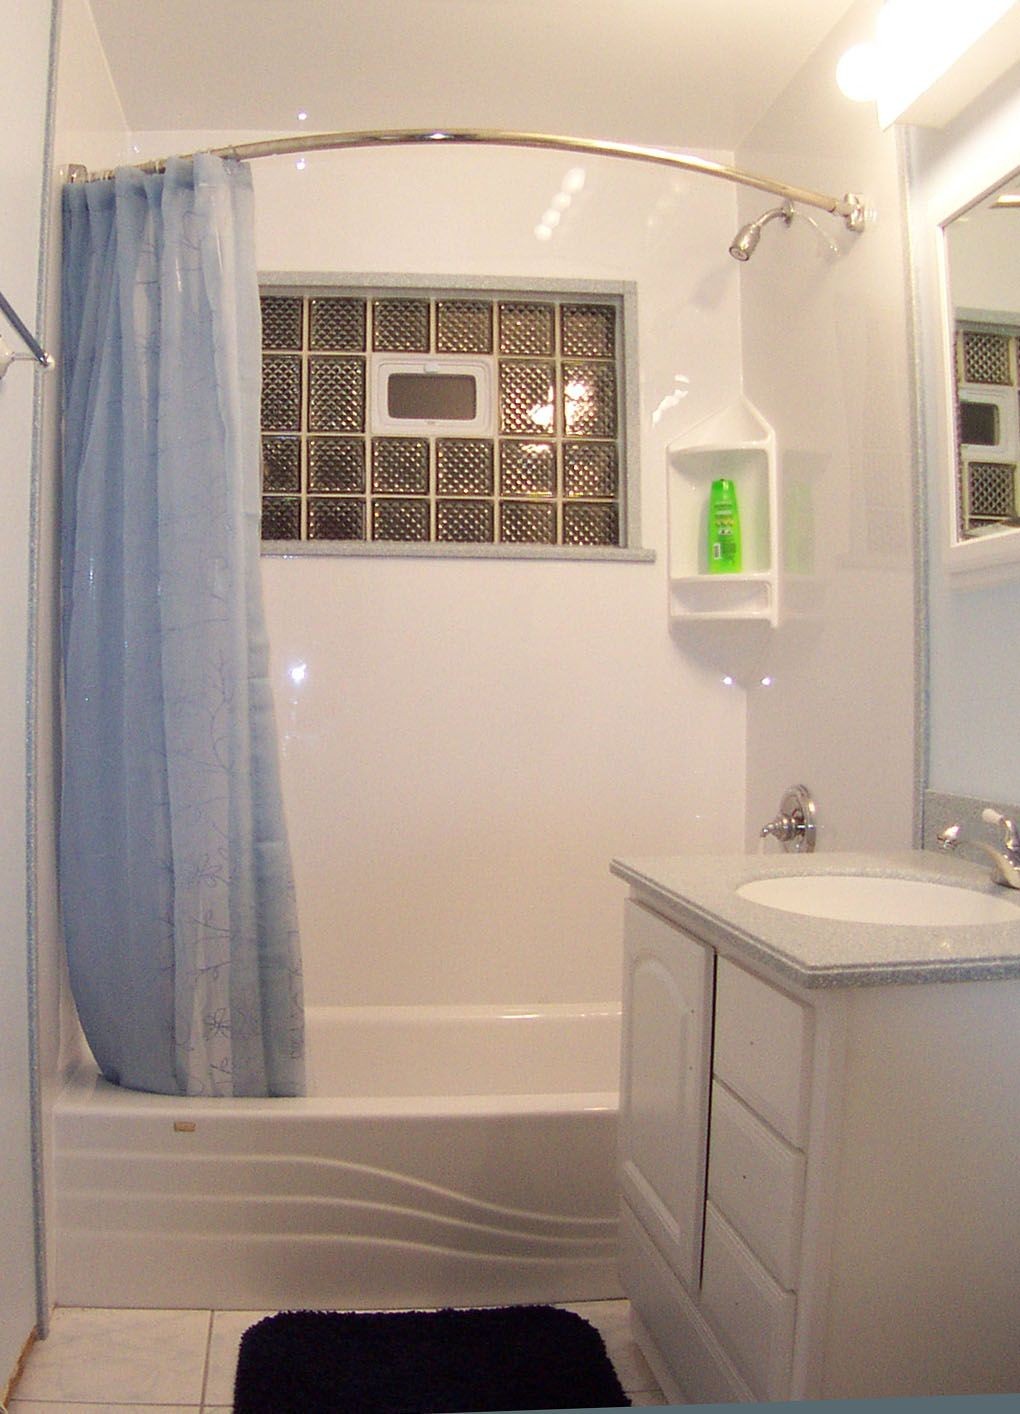 Bathroom Remodeling Design Unique Simple Designs For Small Bathrooms  Home Improvement Remodel Decorating Design